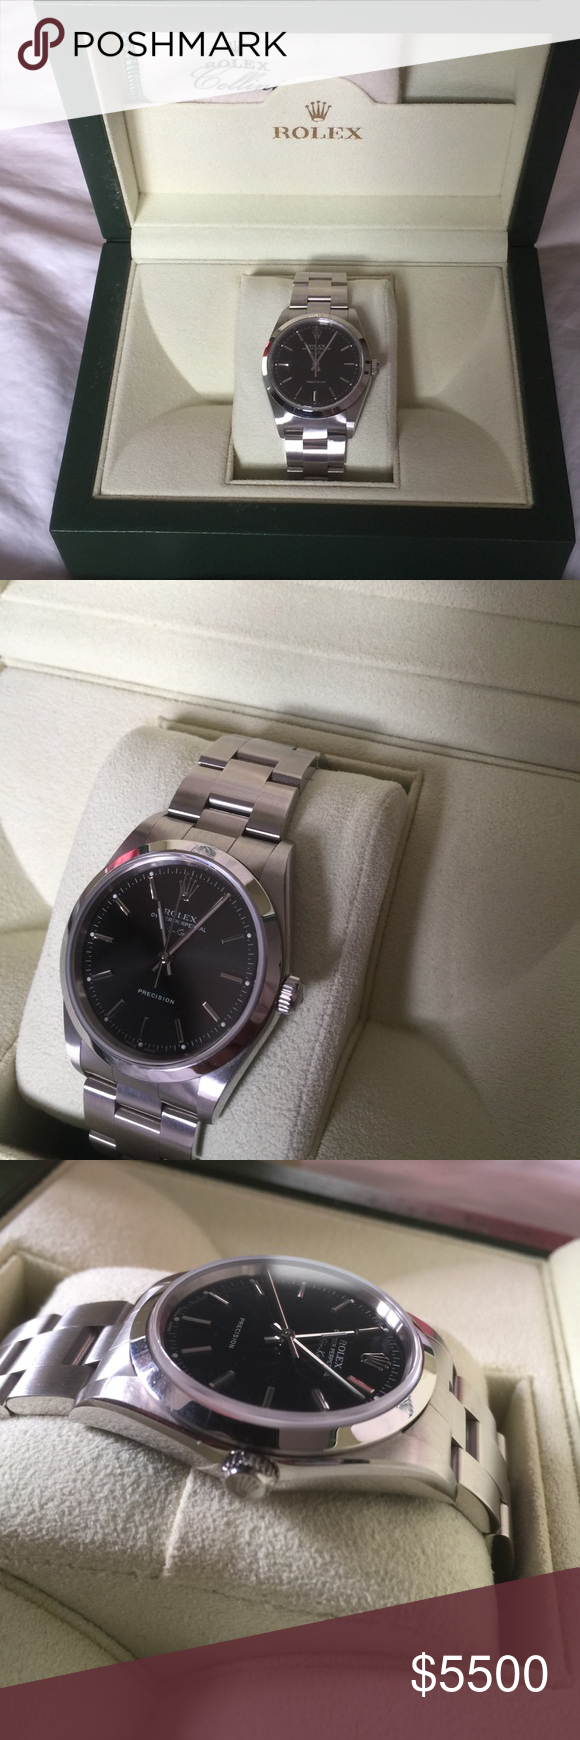 Rolex Oyster Perpetual Air King 14000M Stainless Rolex